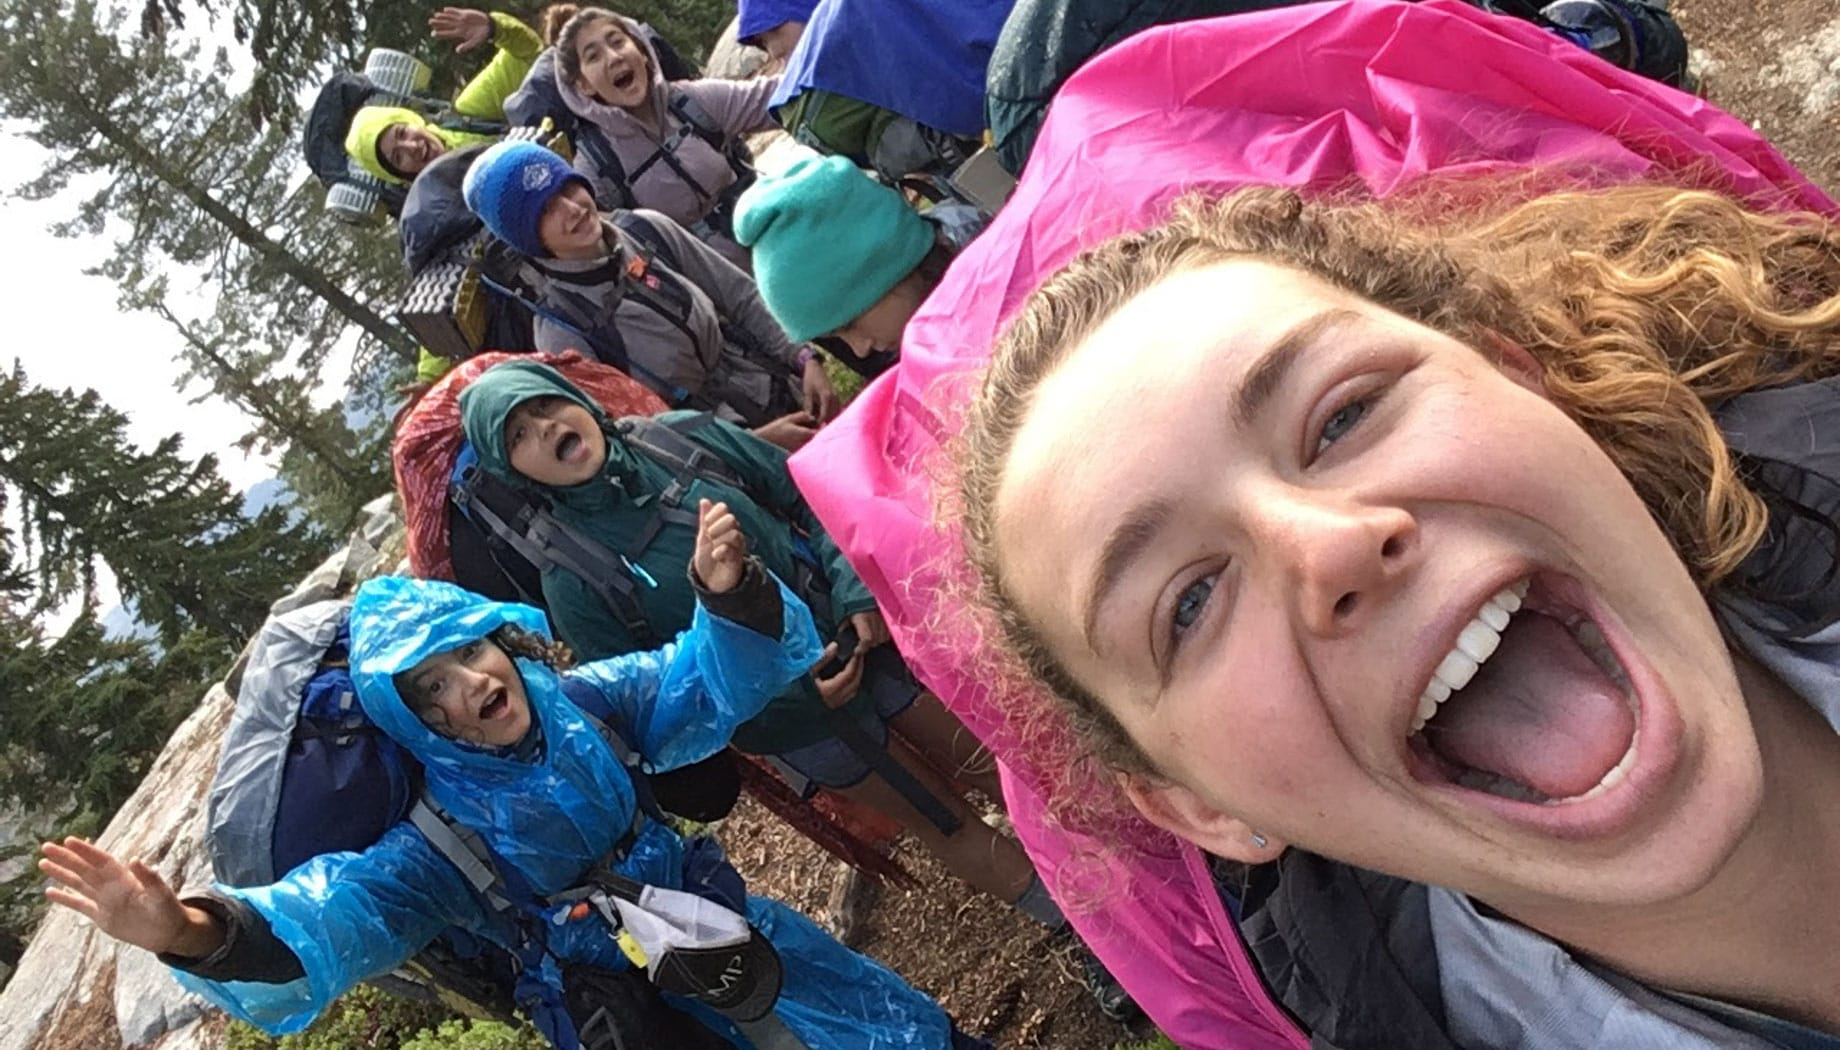 Teens taking a group selfie with backpacks on at the Women of the Wild quest